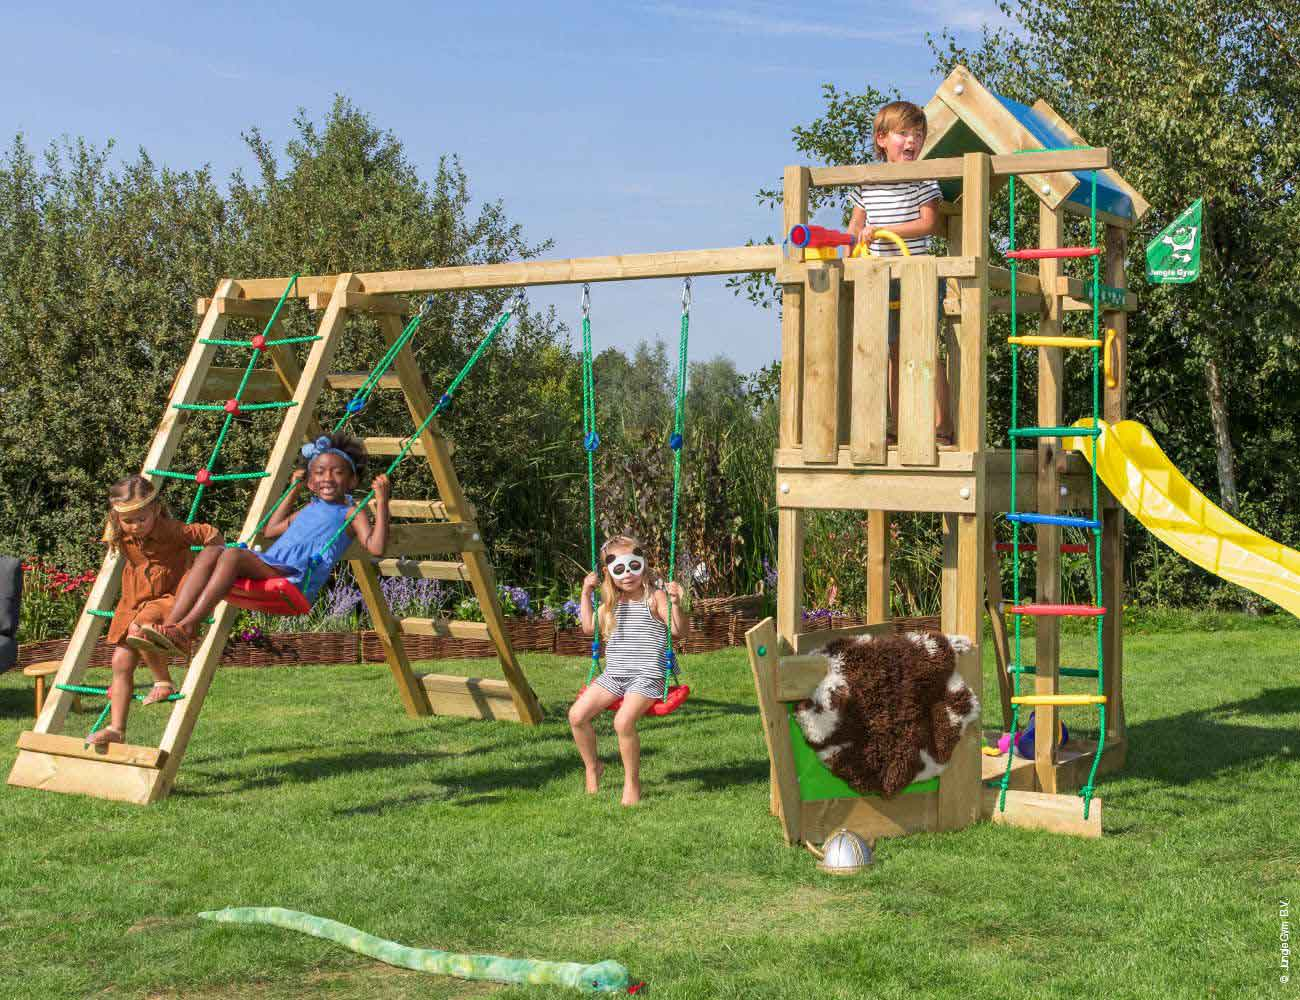 Torretta gioco Viking-altalena-arrampicata_mybricoshop-jungle-gym-